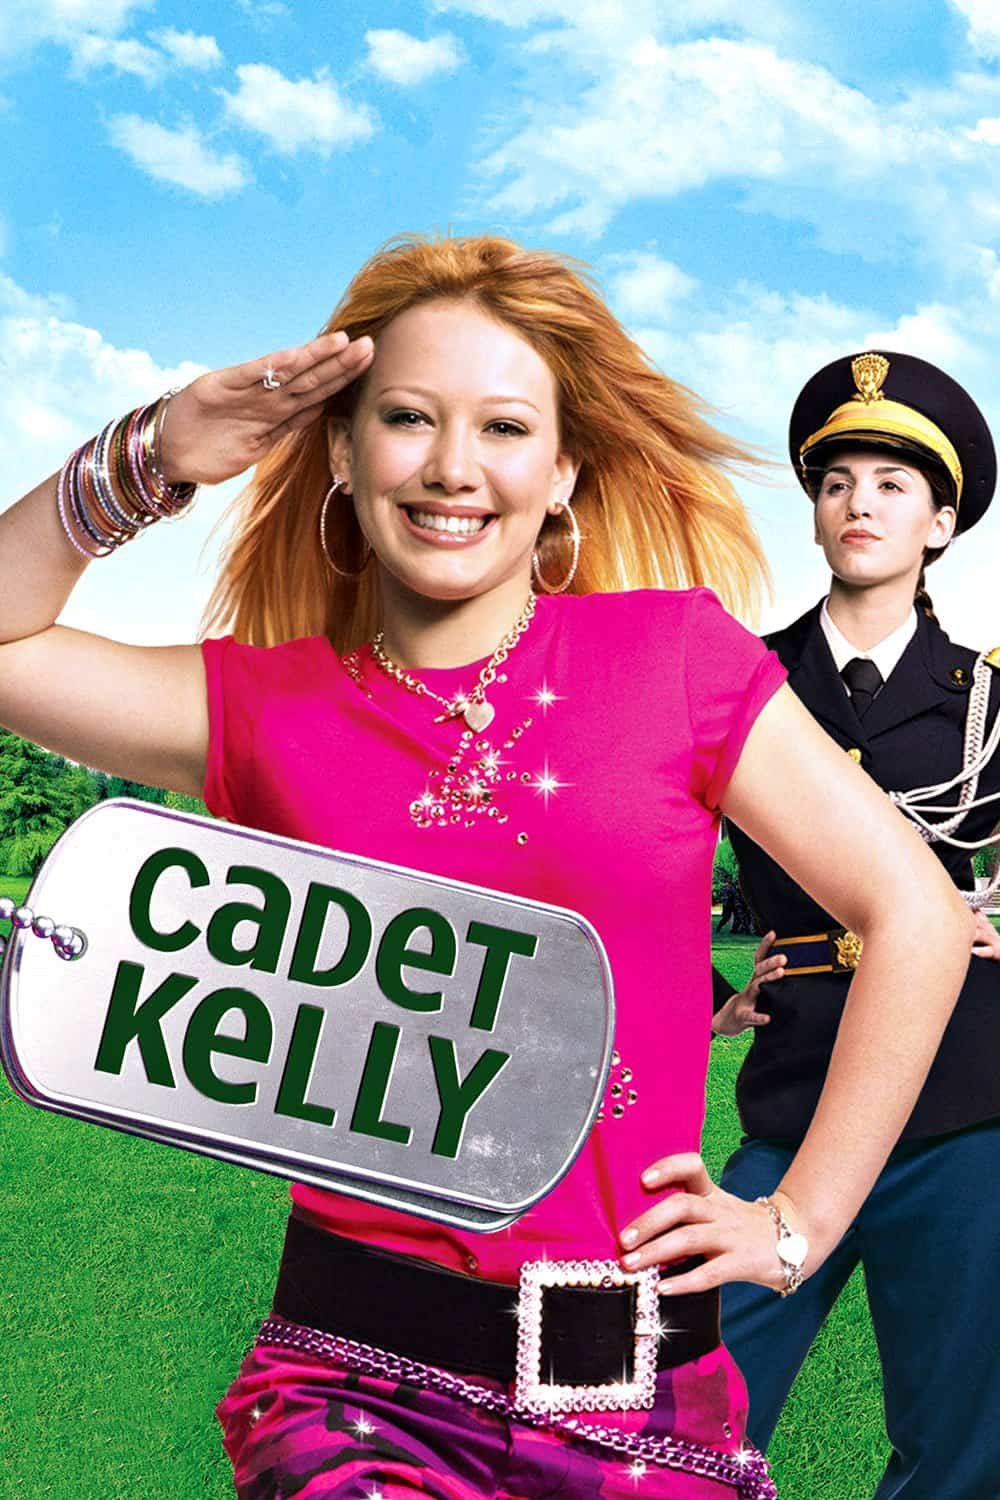 Cadet Kelly, 2002